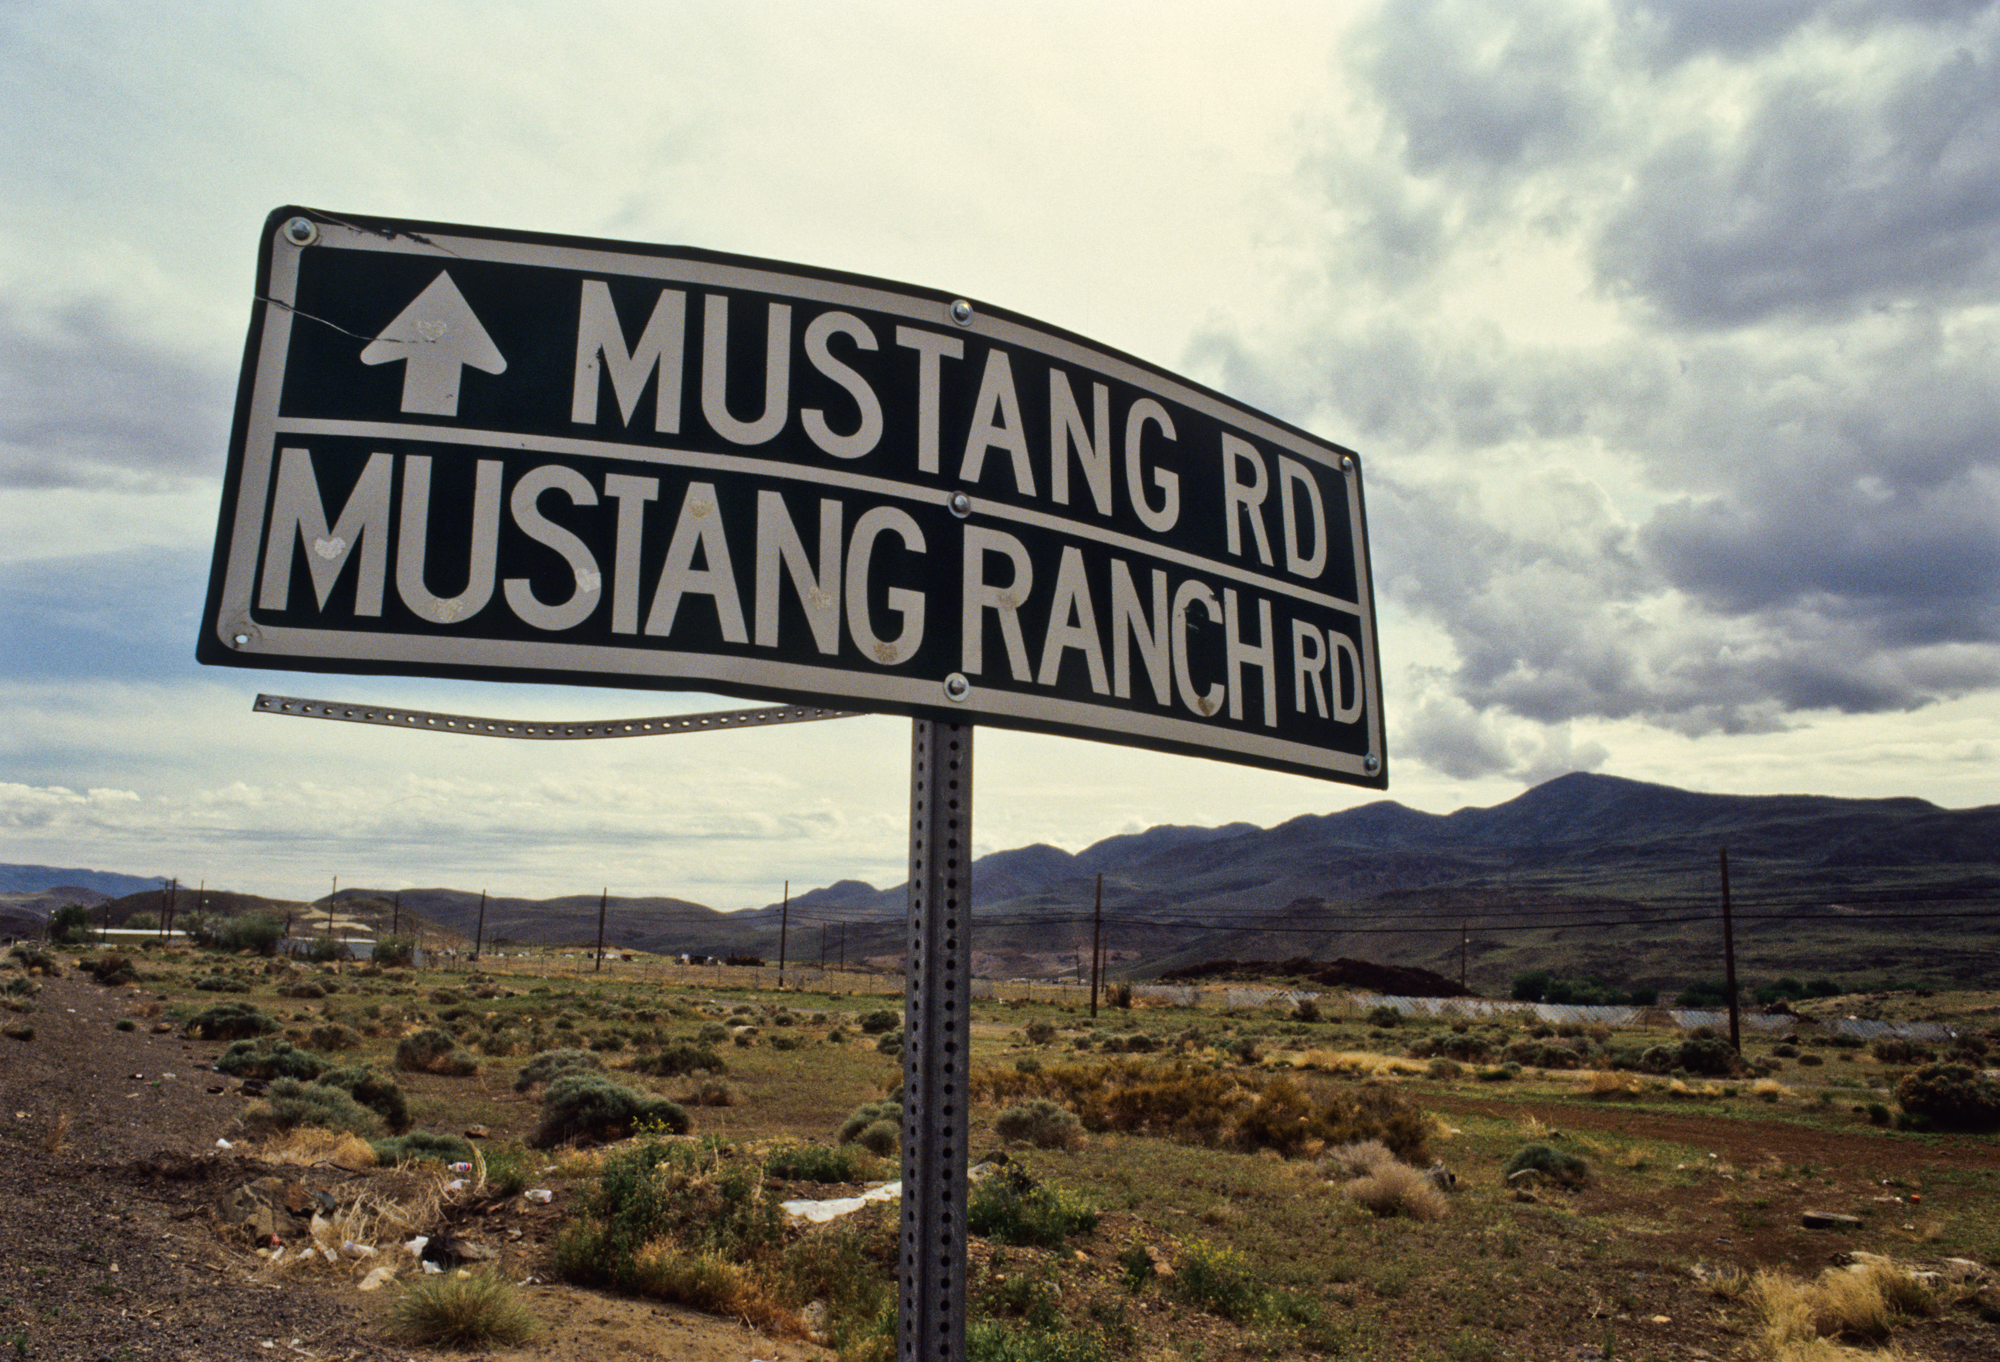 Lynn Goldsmith Mustang Ranch